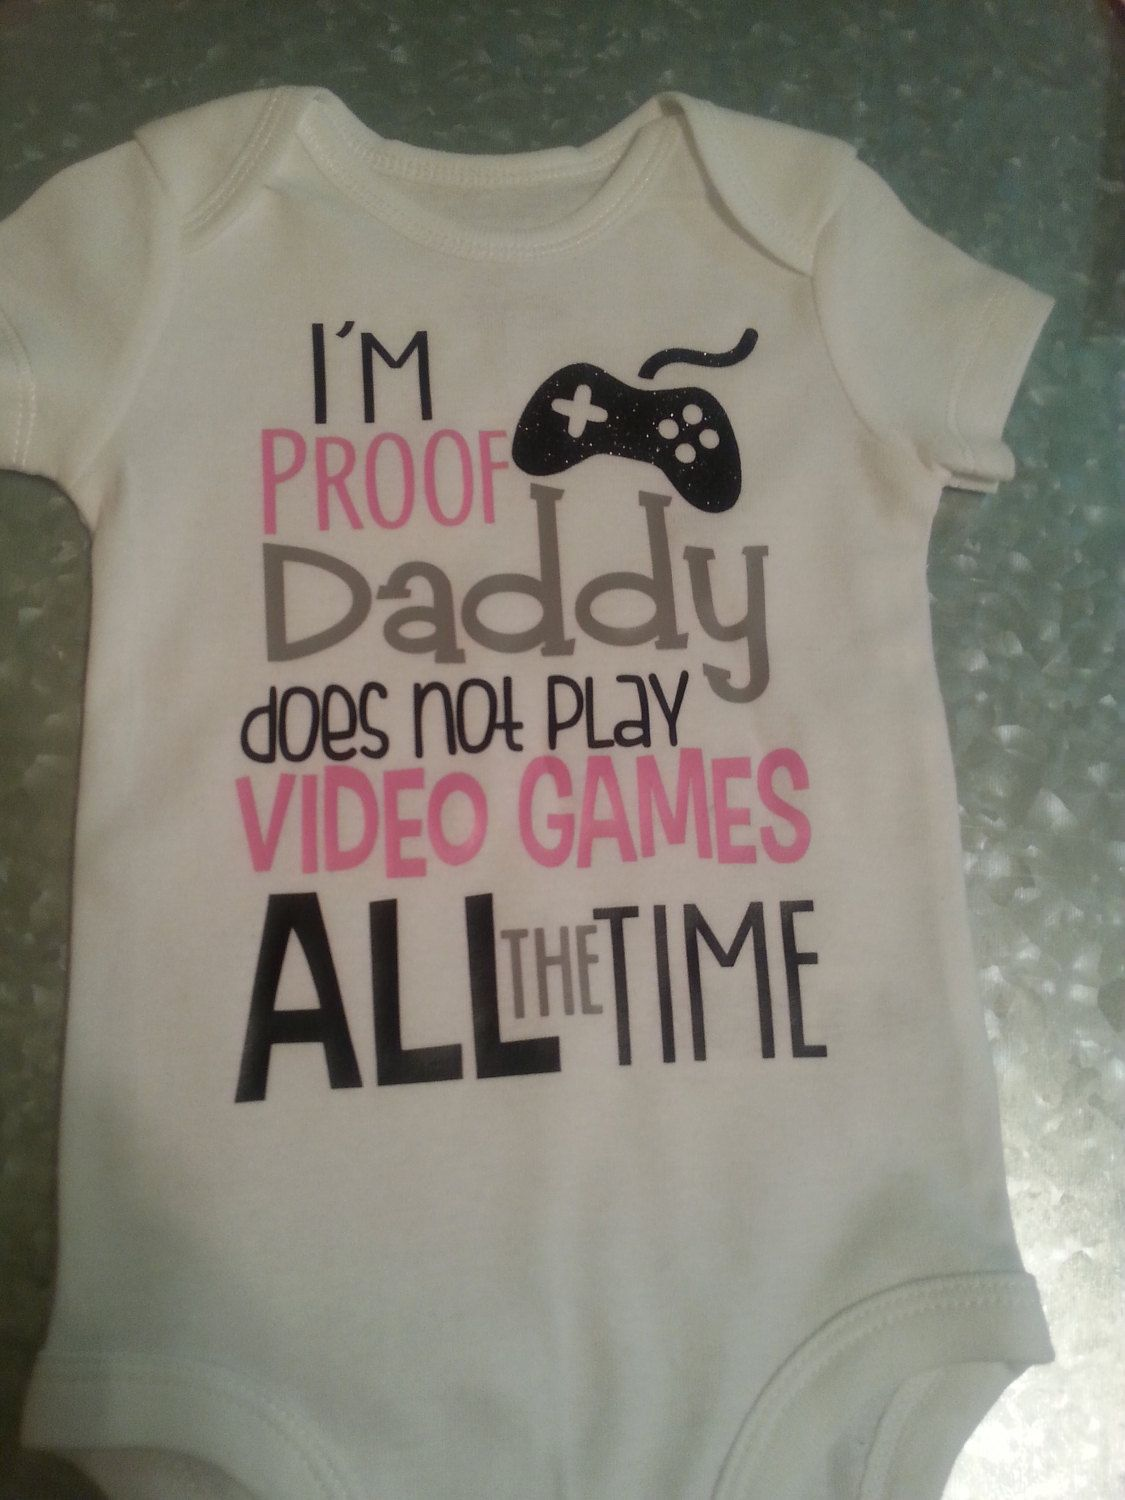 9543f1b91 I m Proof That Daddy Doesn t Play Video Games All The Time Baby Onesie  Infant Clothing Funny Baby Shirt Gamer Shirt Baby And Daddy Shirt by ...